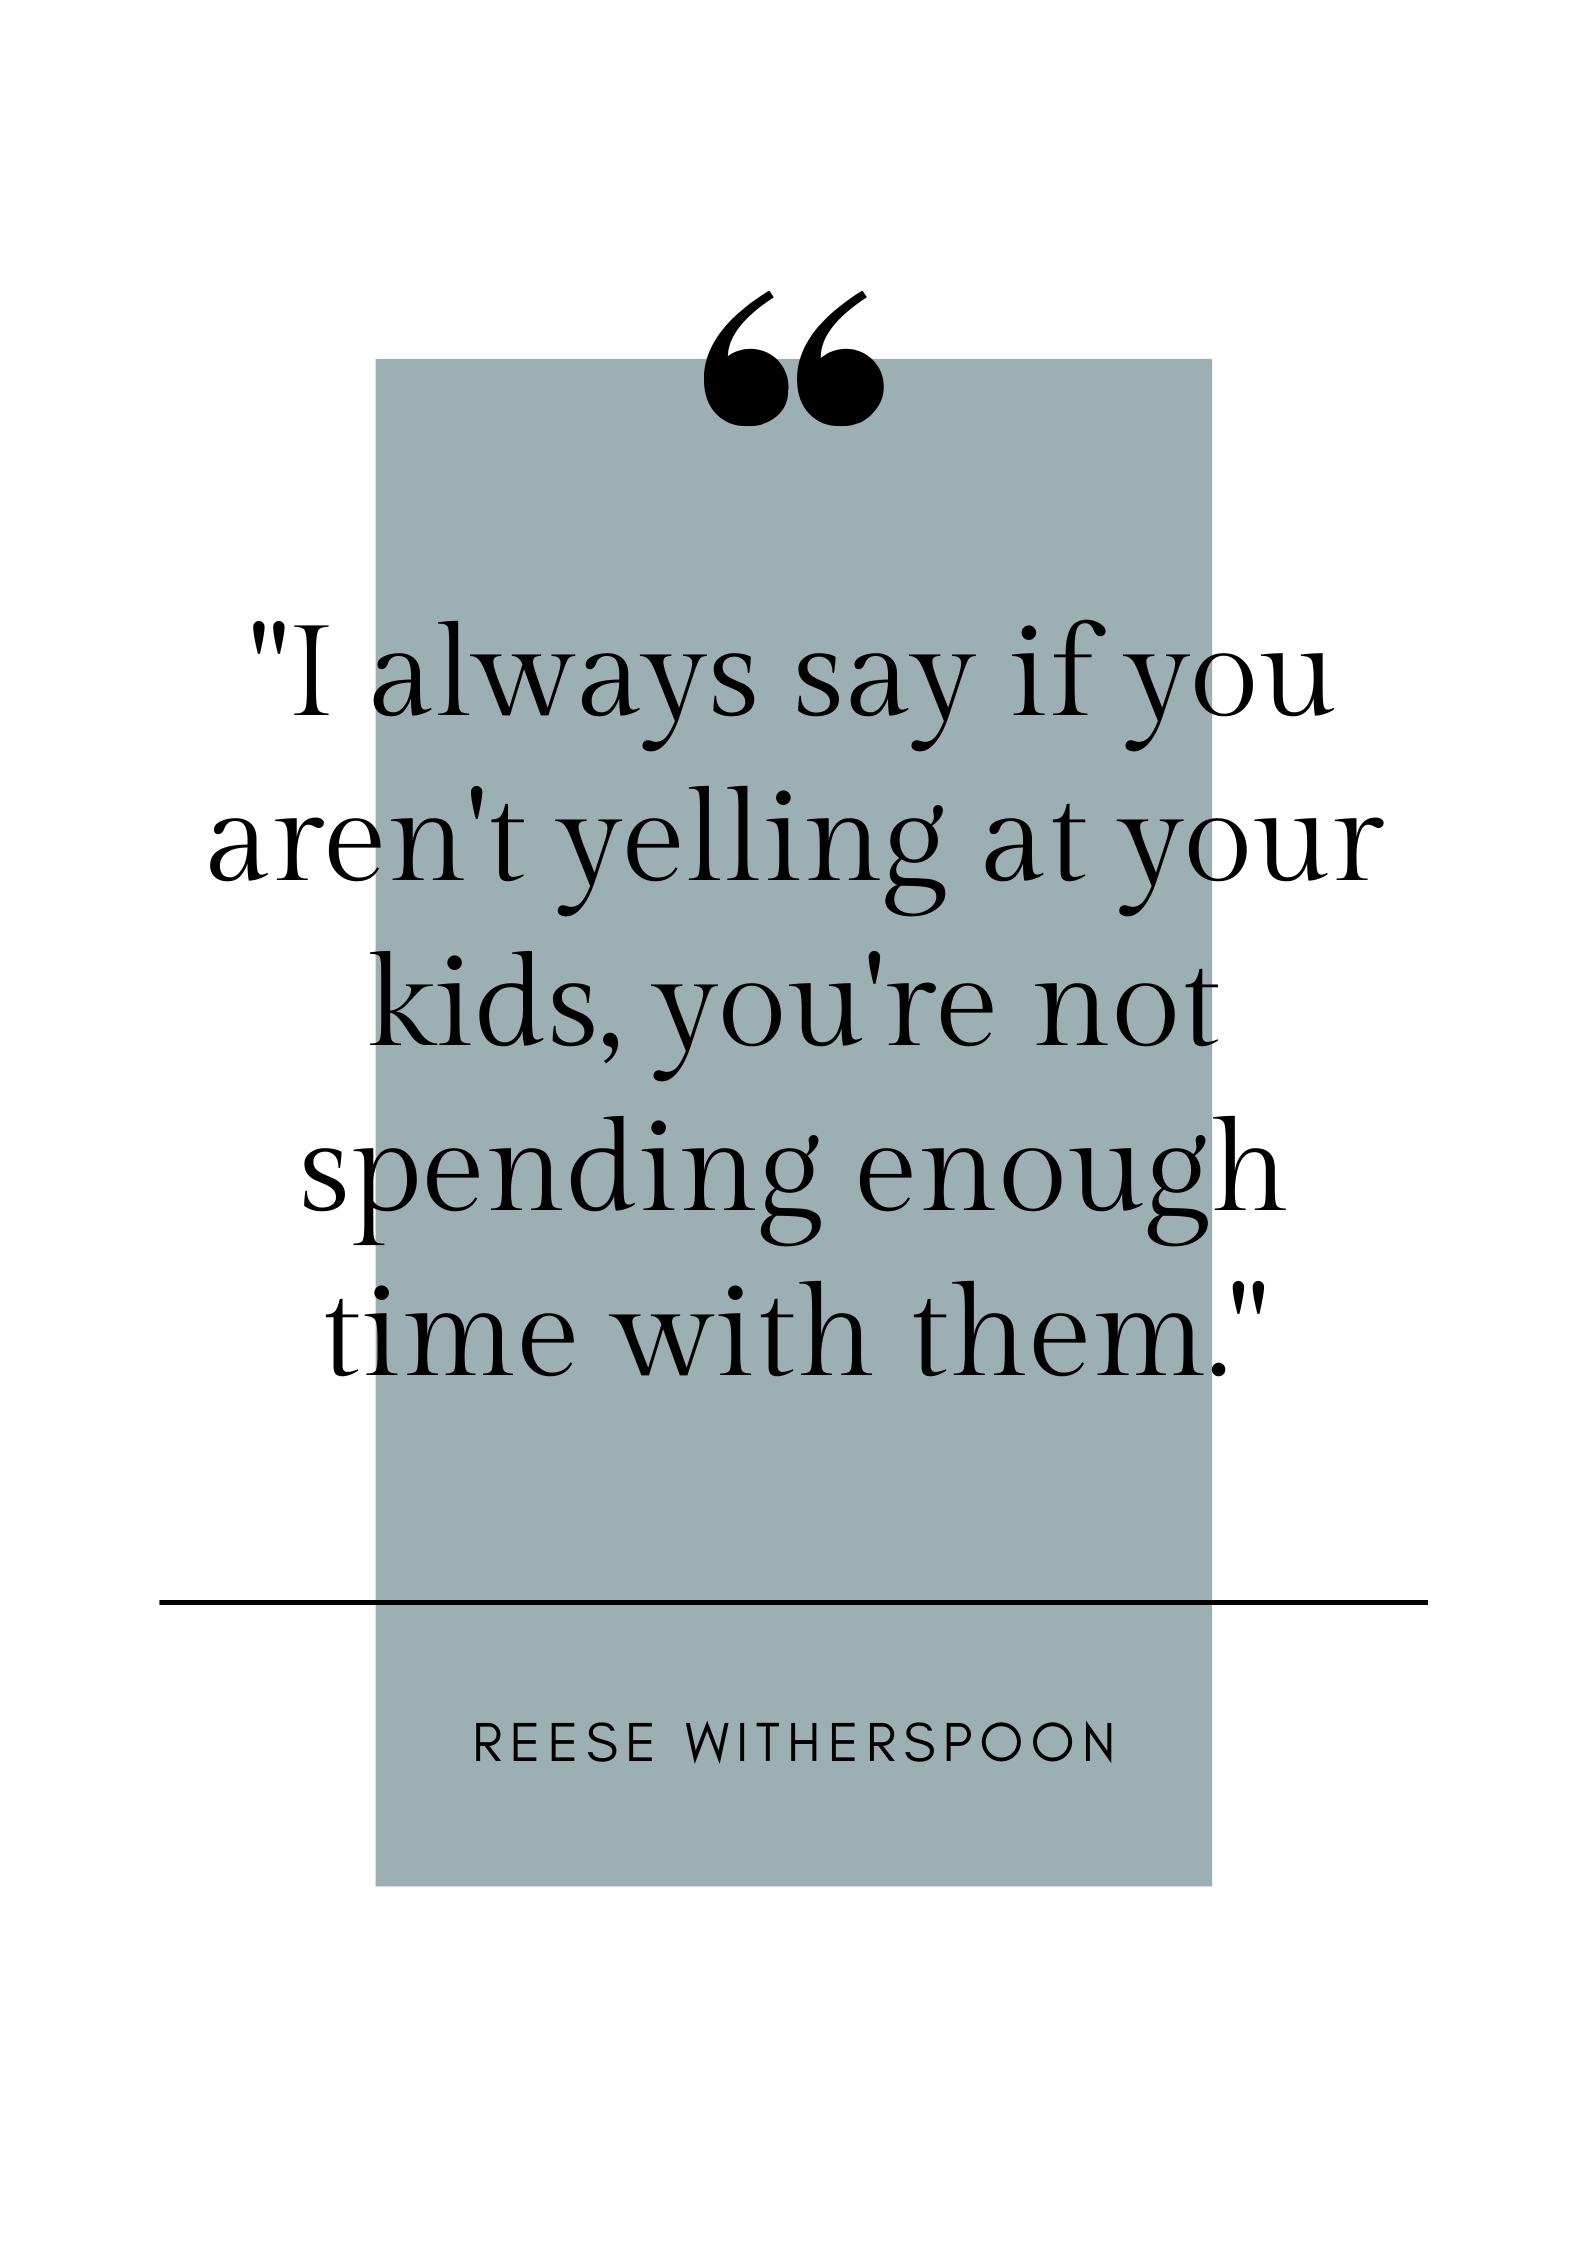 reese witherspoon quote